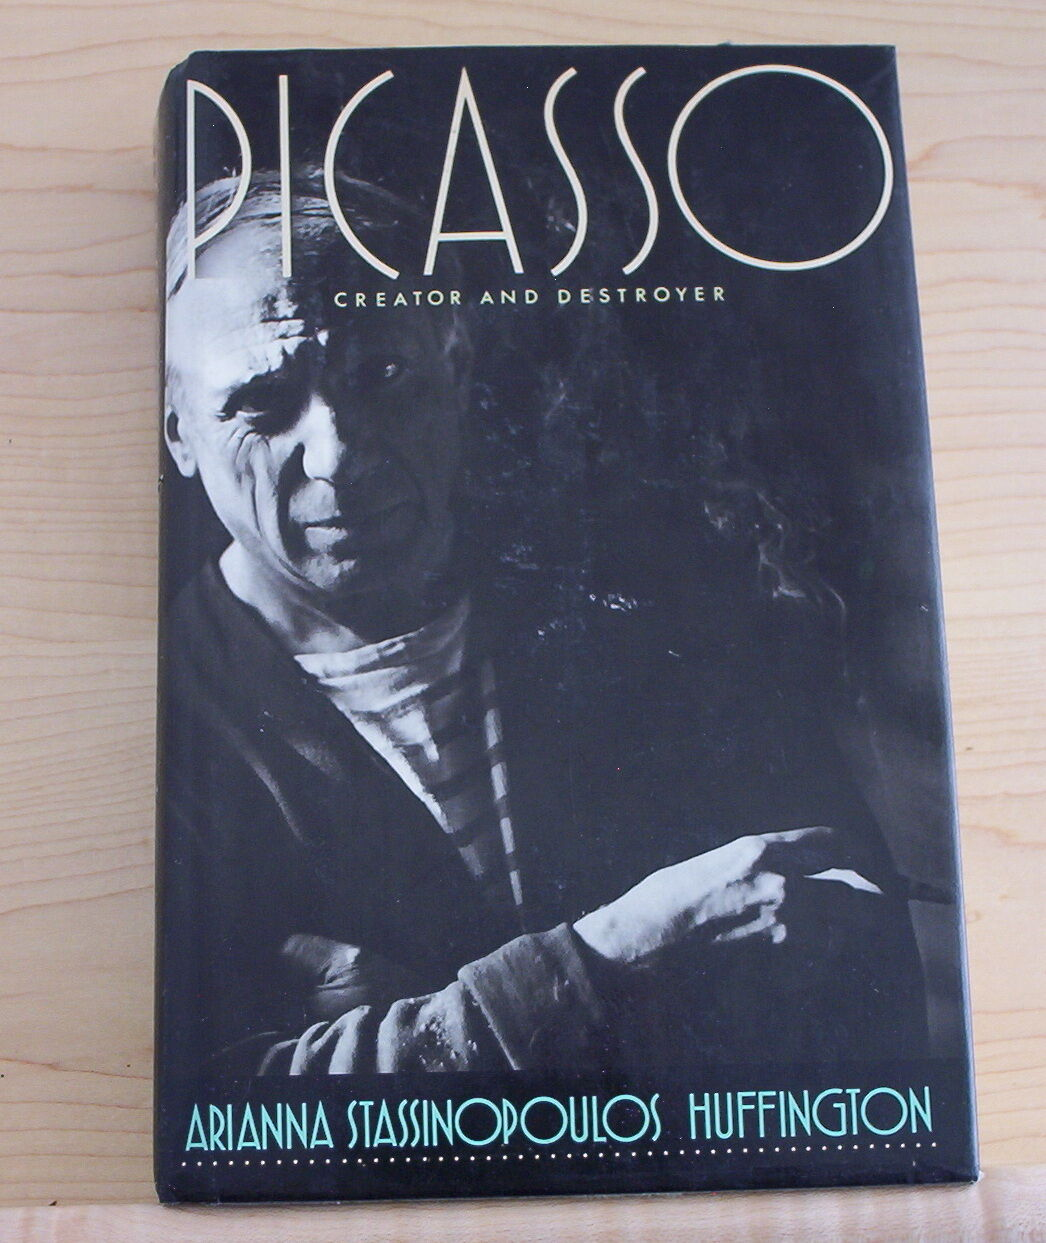 Picasso : Creator and Destroyer by Arianna S. Huffington (1988) 1st Edition |